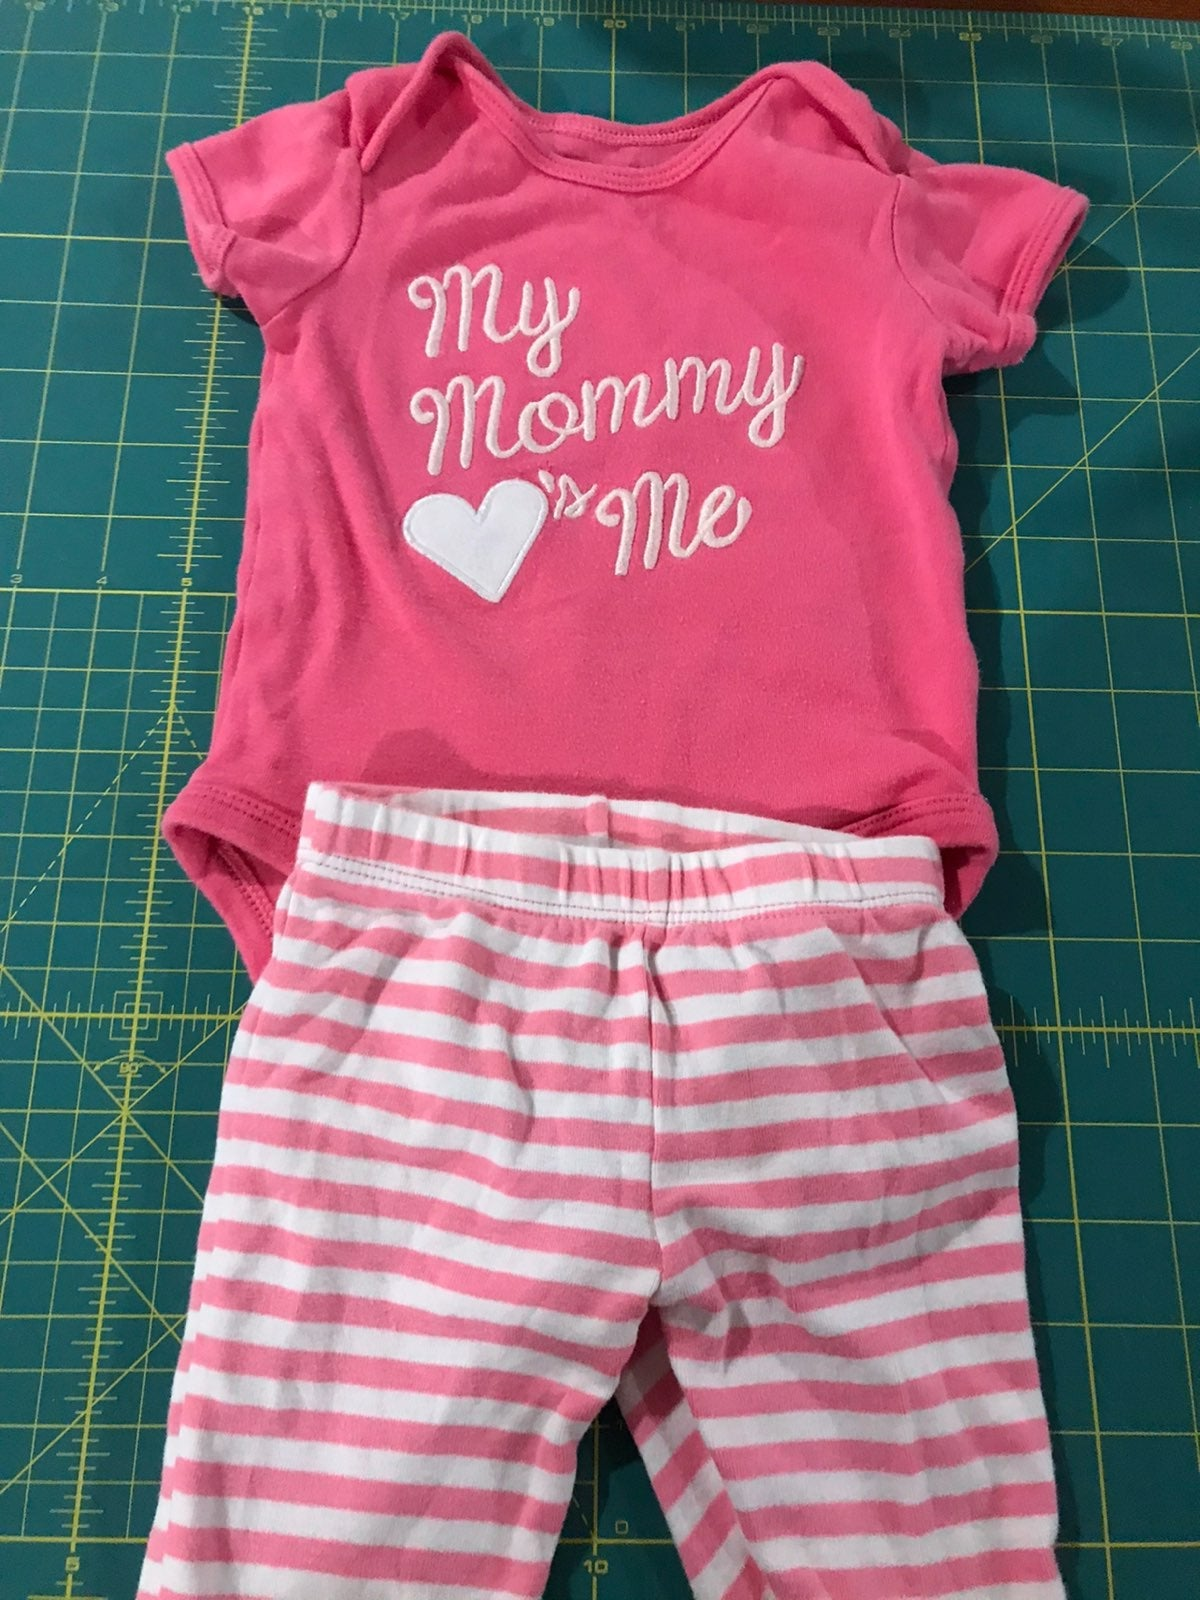 Mommy loves me outfit 6 months